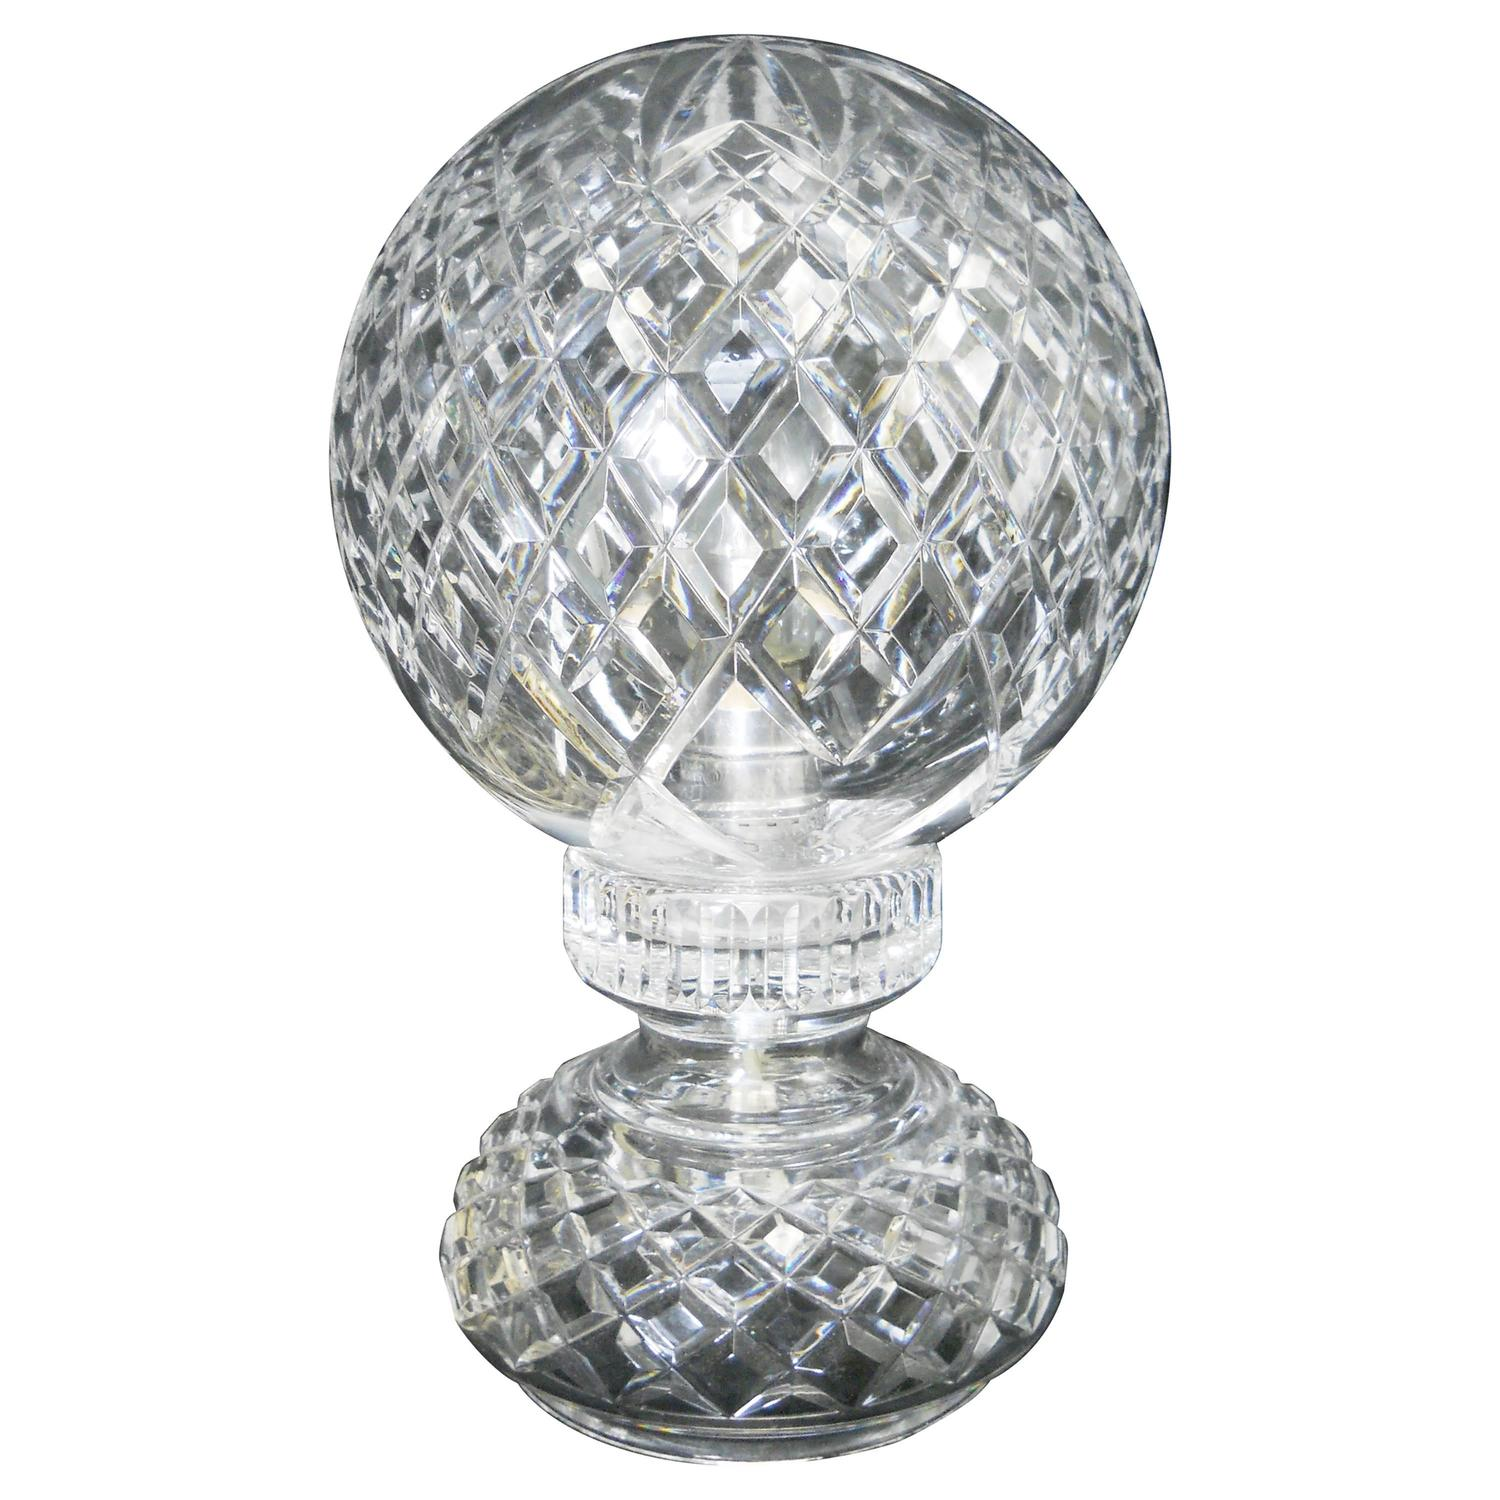 Pretty waterford crystal patterns for dining sets ideas with waterford crystal glass patterns